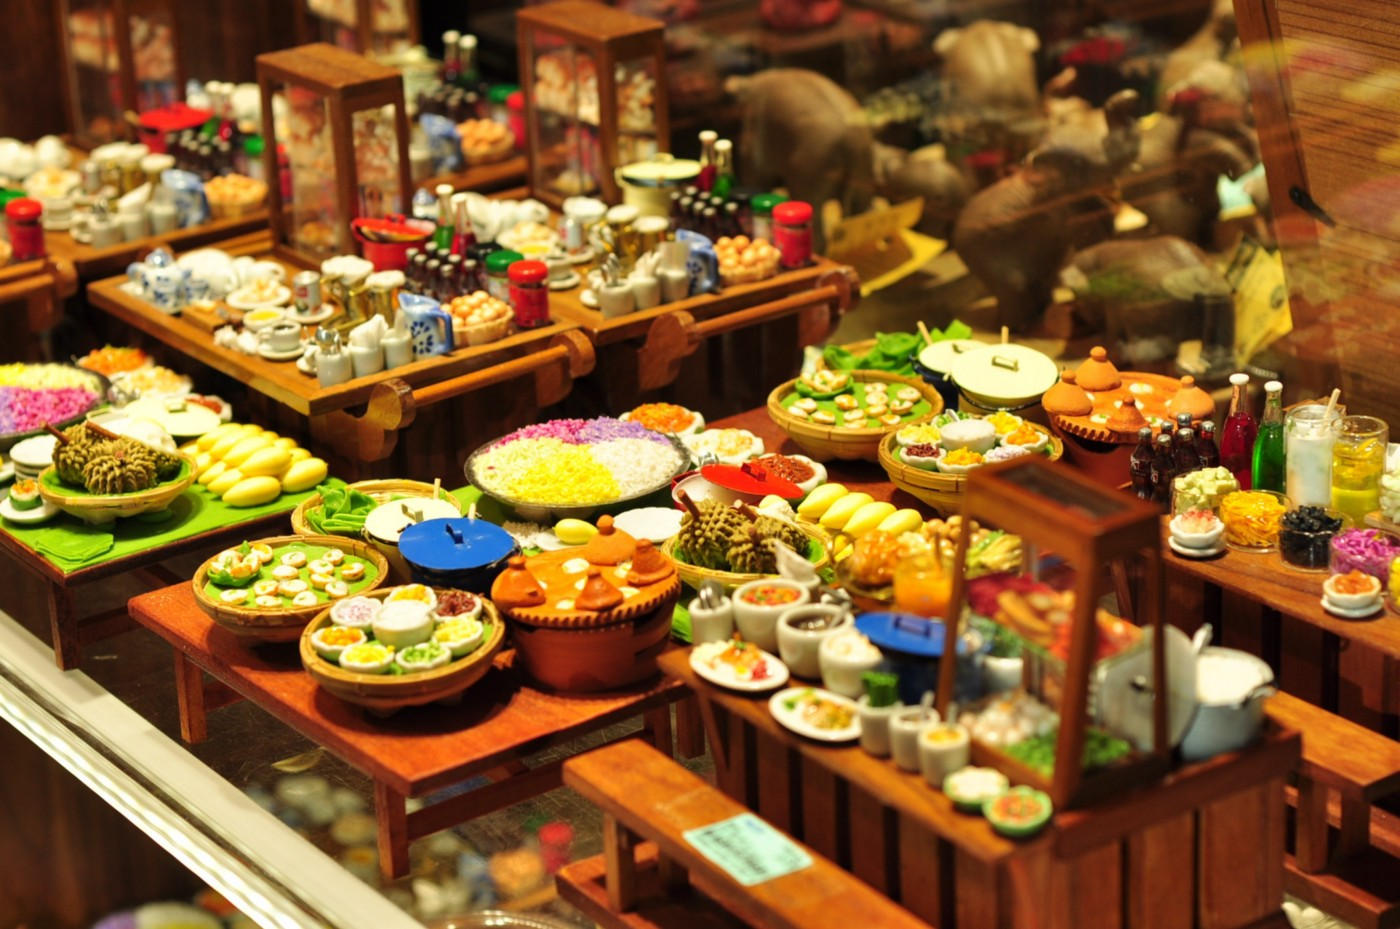 A buffet or full of foods